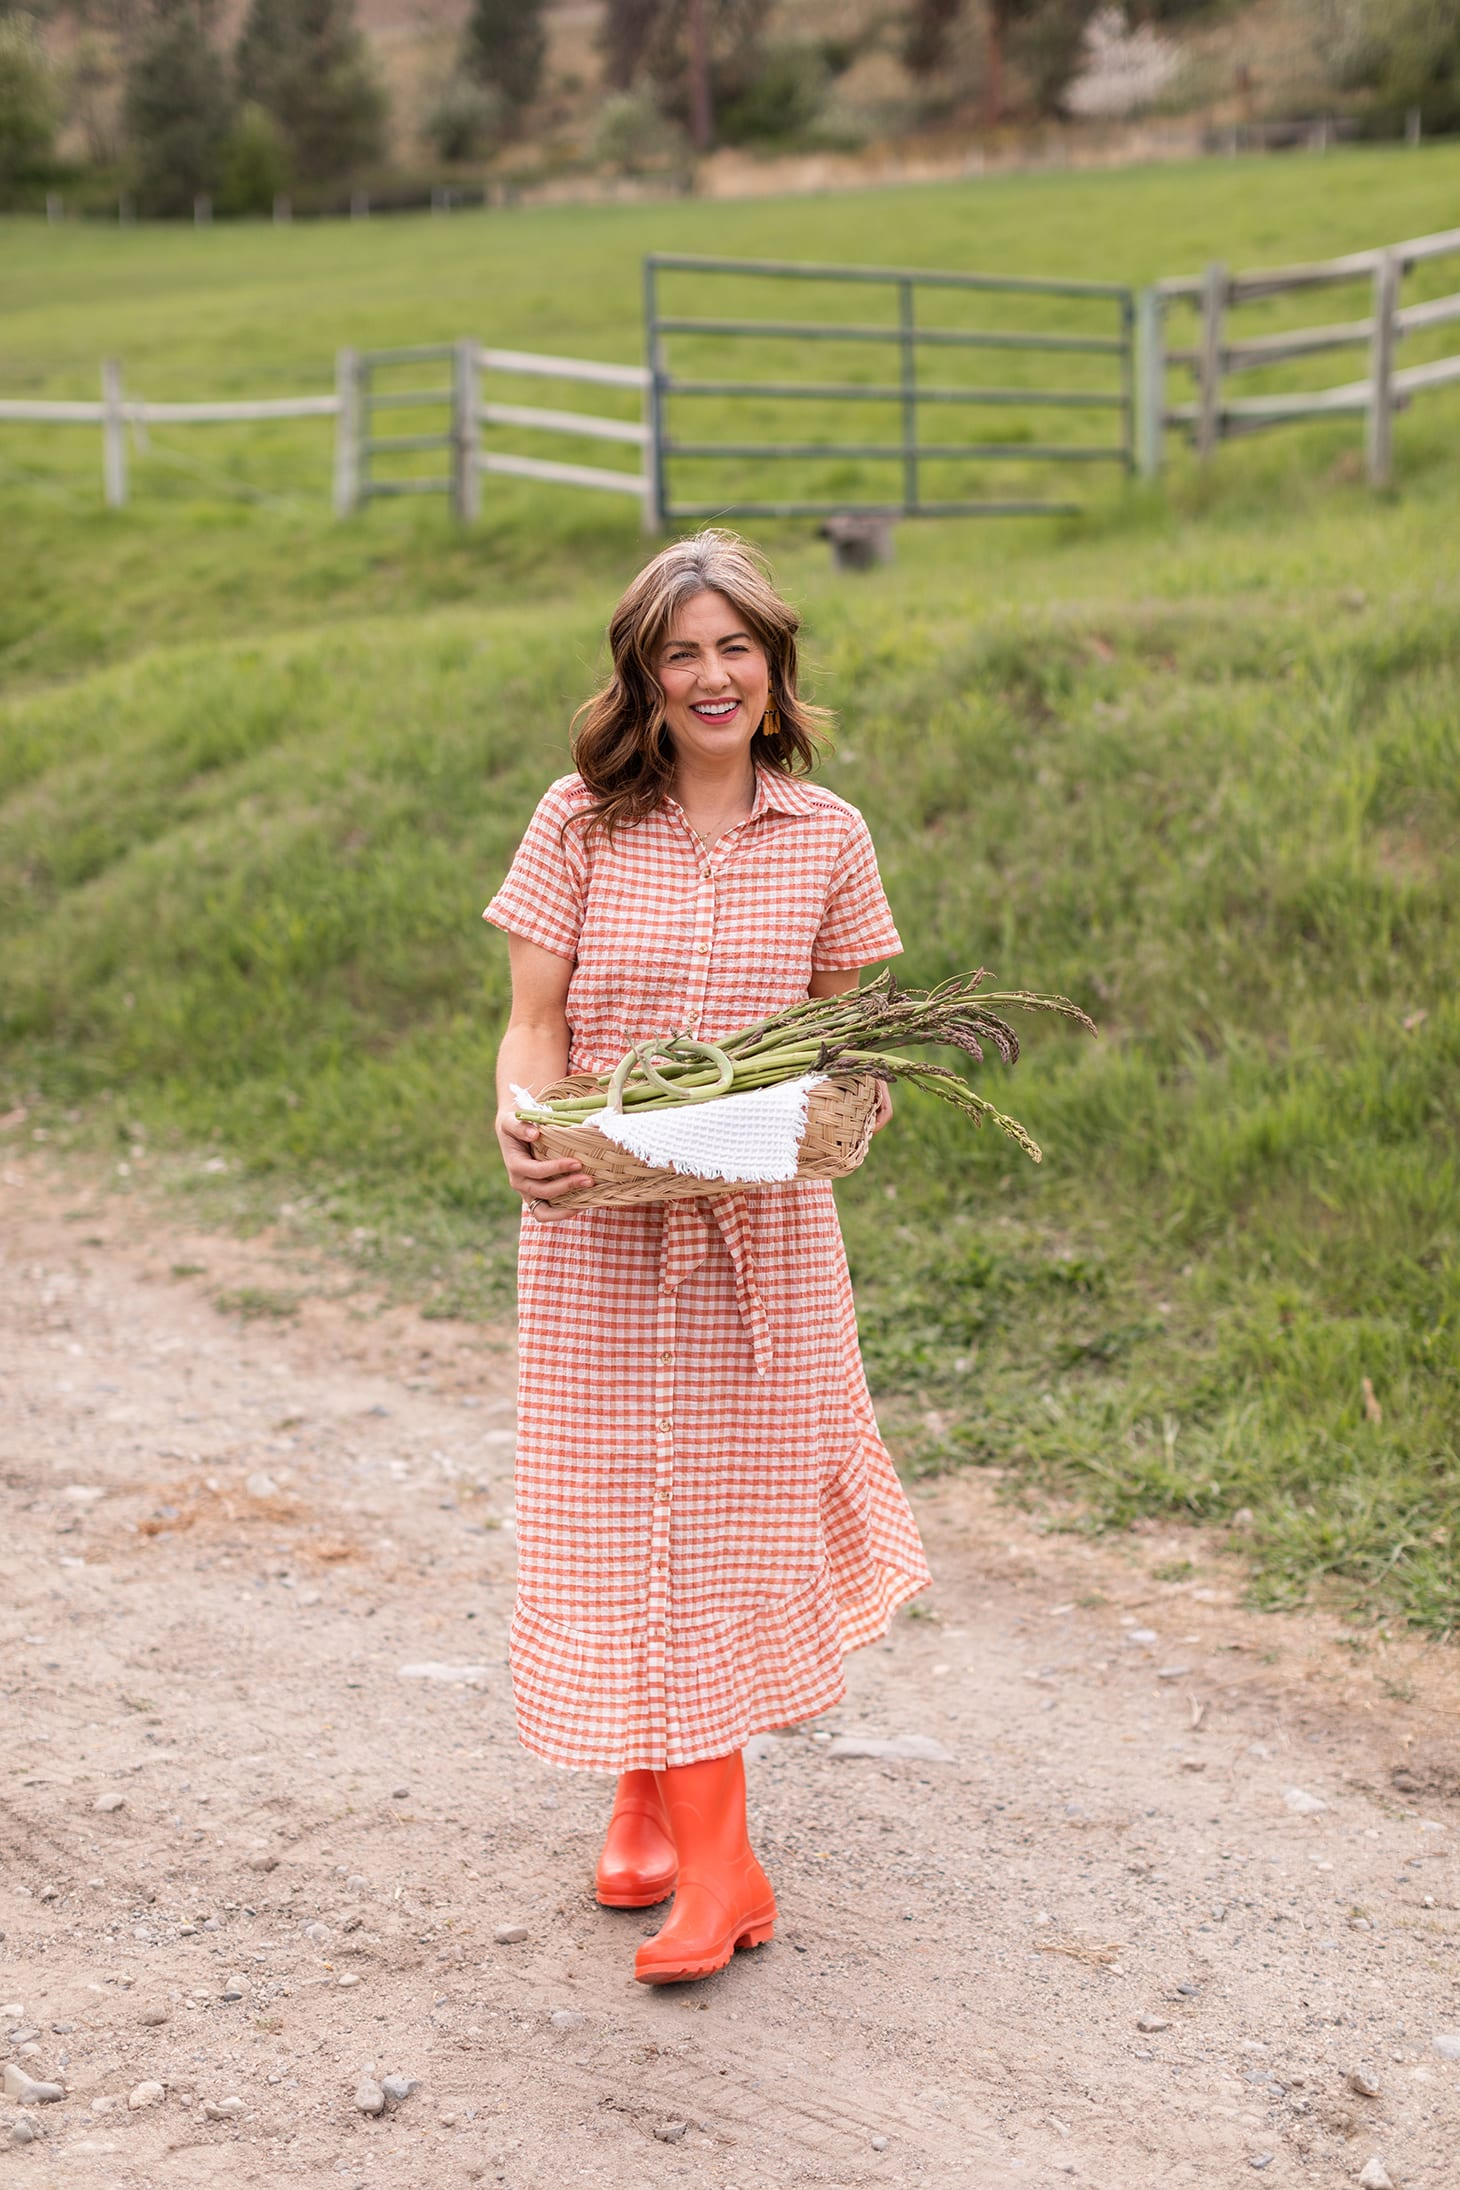 Jillian Harris wearing orange gingham printed dress and orange gum boots while carrying a basket of asparagus, showing one of her farm-inspired outfits.